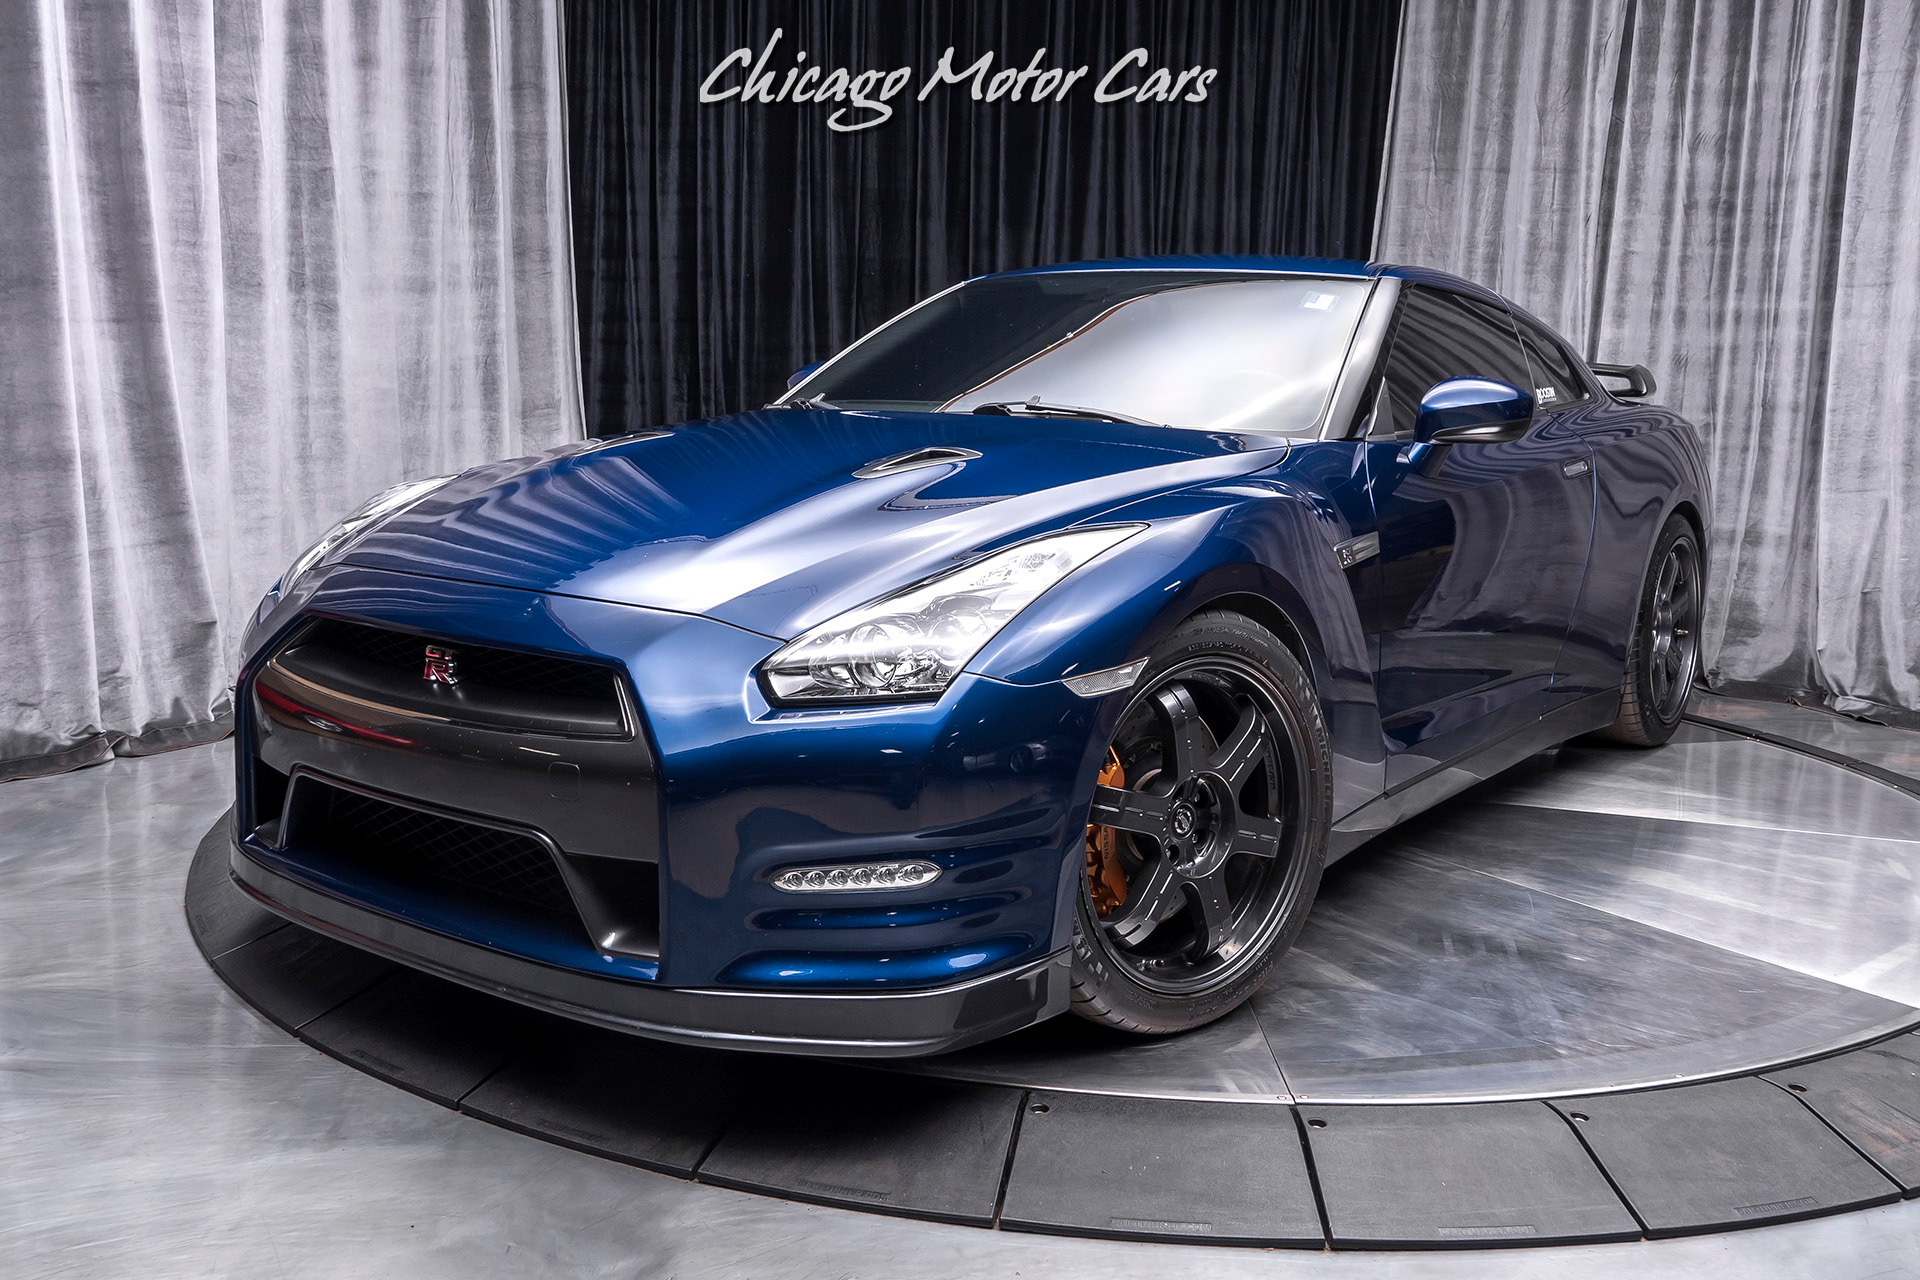 Used-2013-Nissan-GT-R-Premium-Coupe-700-hp-UPGRADED-TRANSMISSION